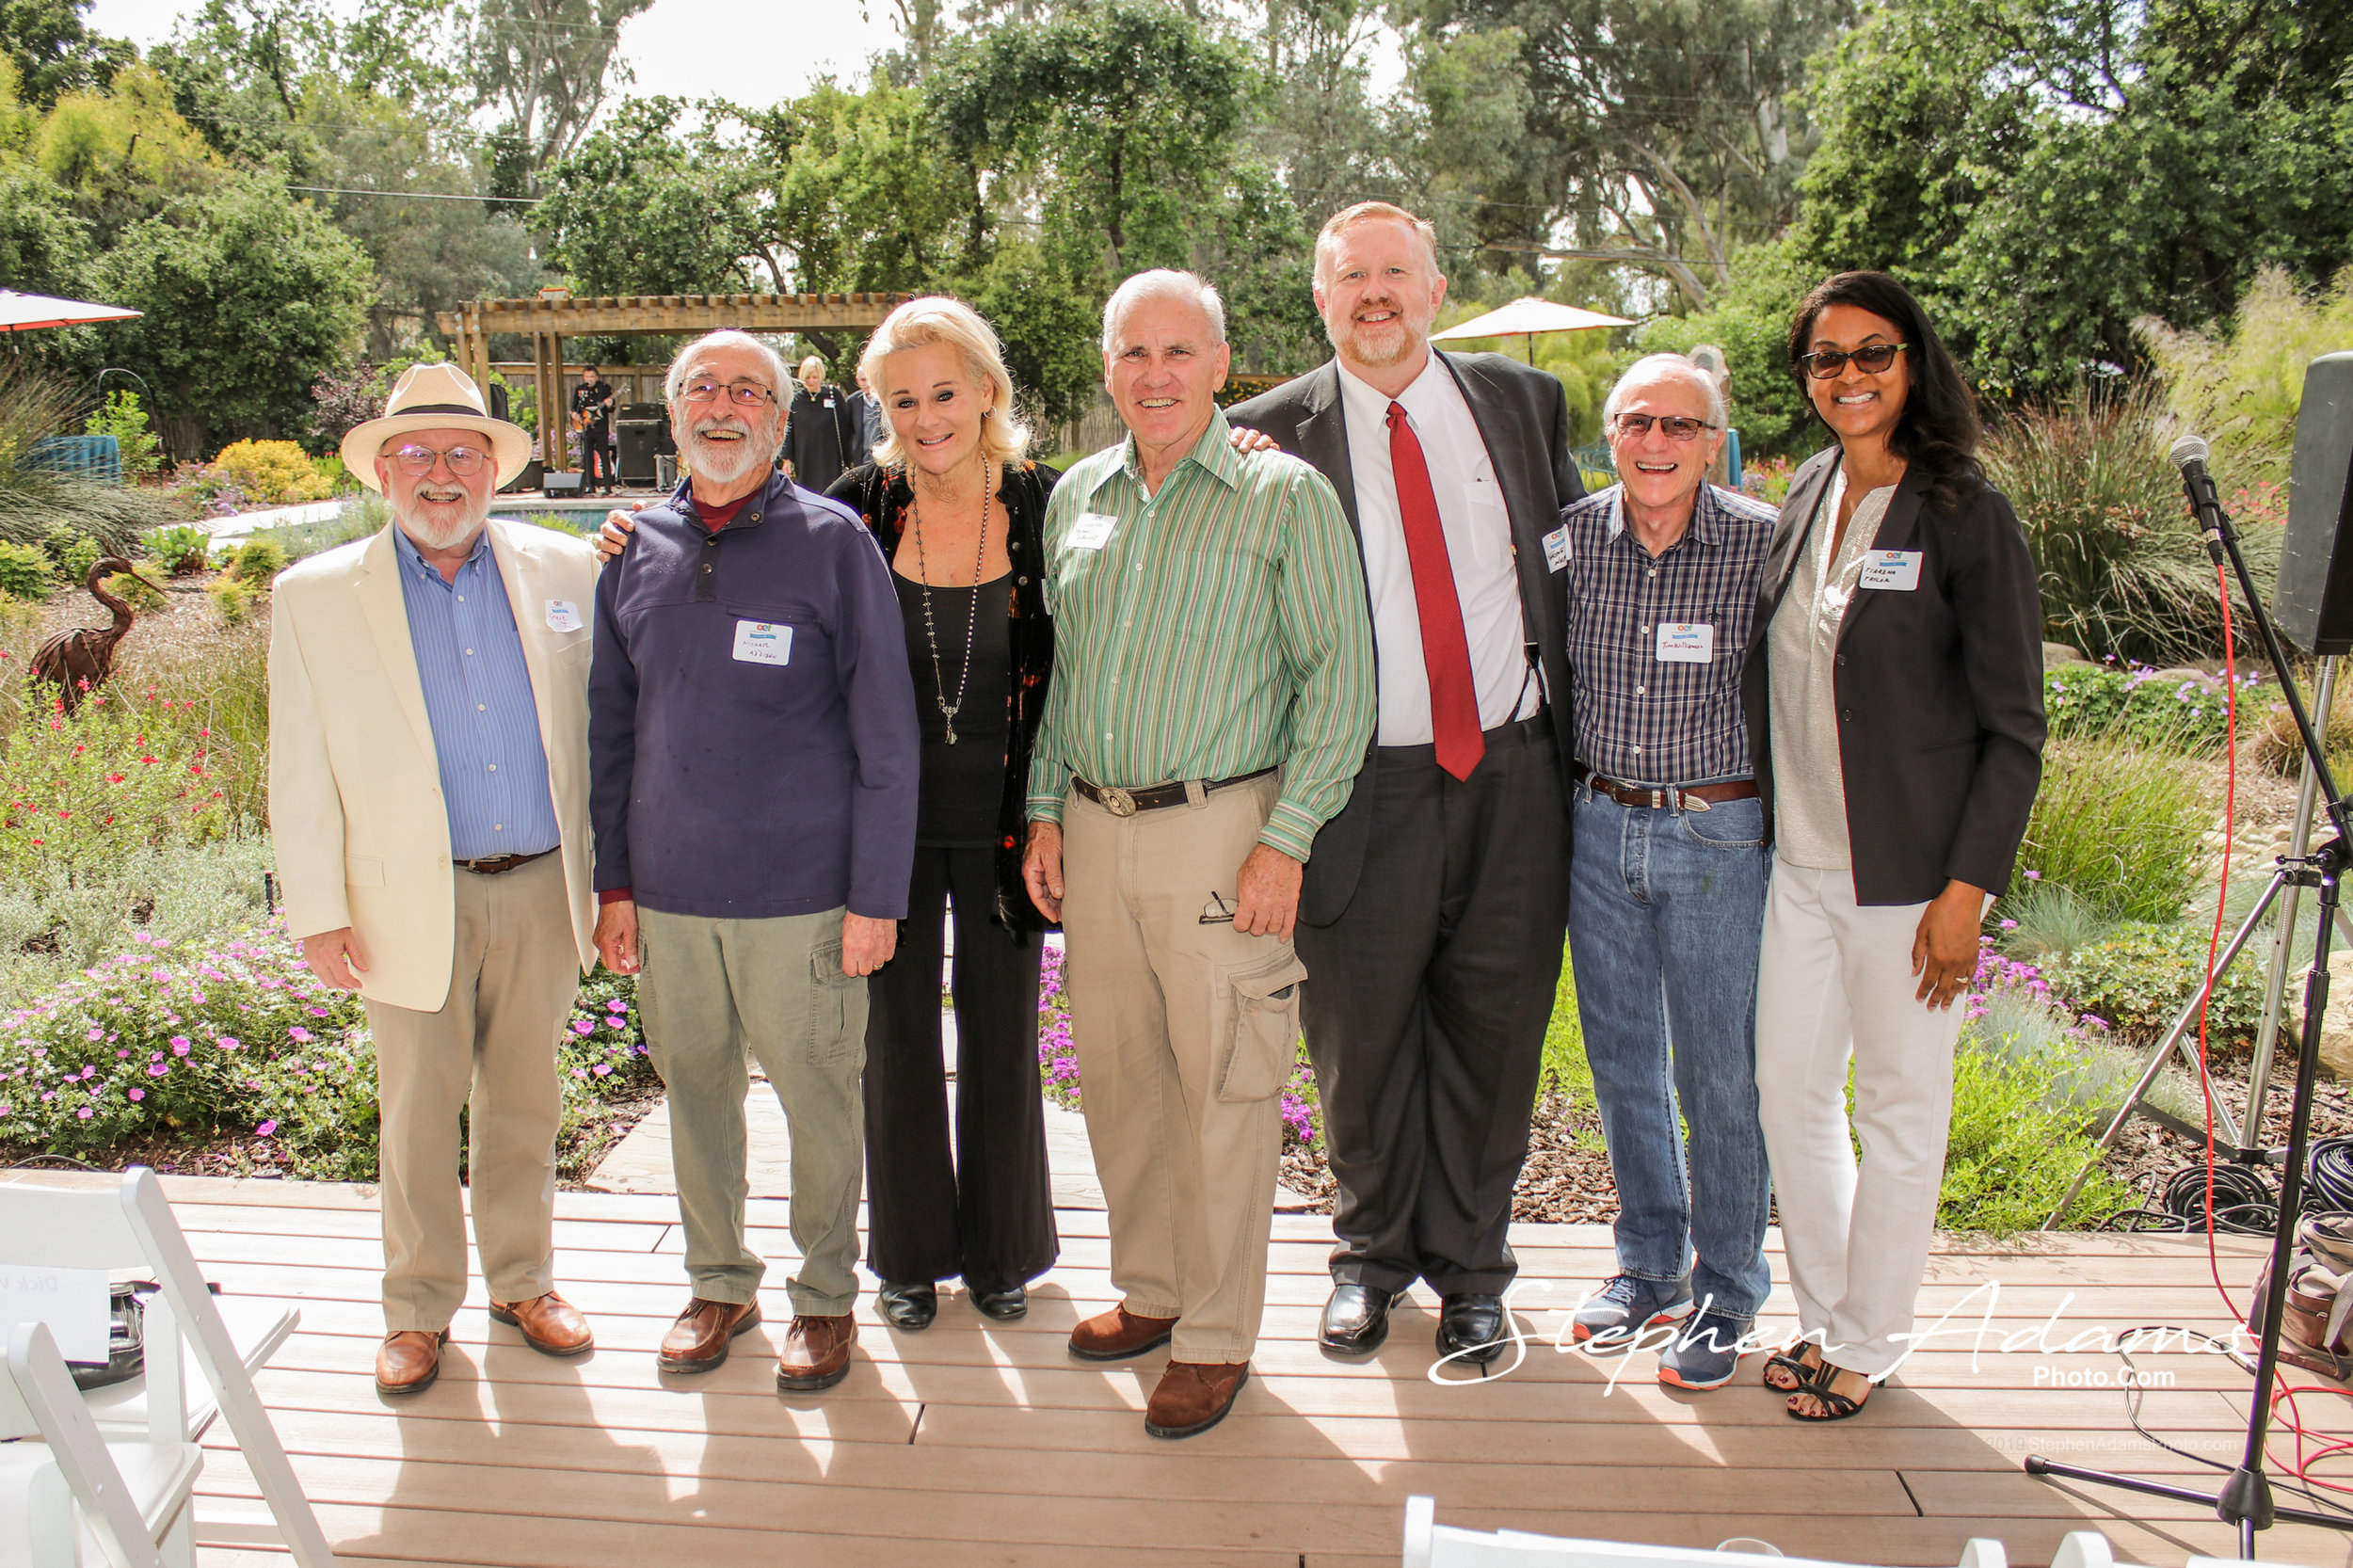 Seven of past and current OEF presidents pose together, from left to right: Steve Jung, (2000 to 2005), Michael Addison (2012 to 2016), Therese Hartmann (2017), Mike Caldwell (2008 to 2009), Thayne Whipple (2006 to 2007 and 2010), Tim Williamson (1998 to 1999) and Tiarzha Taylor (2017 to present). Photo by Stephen Adams.